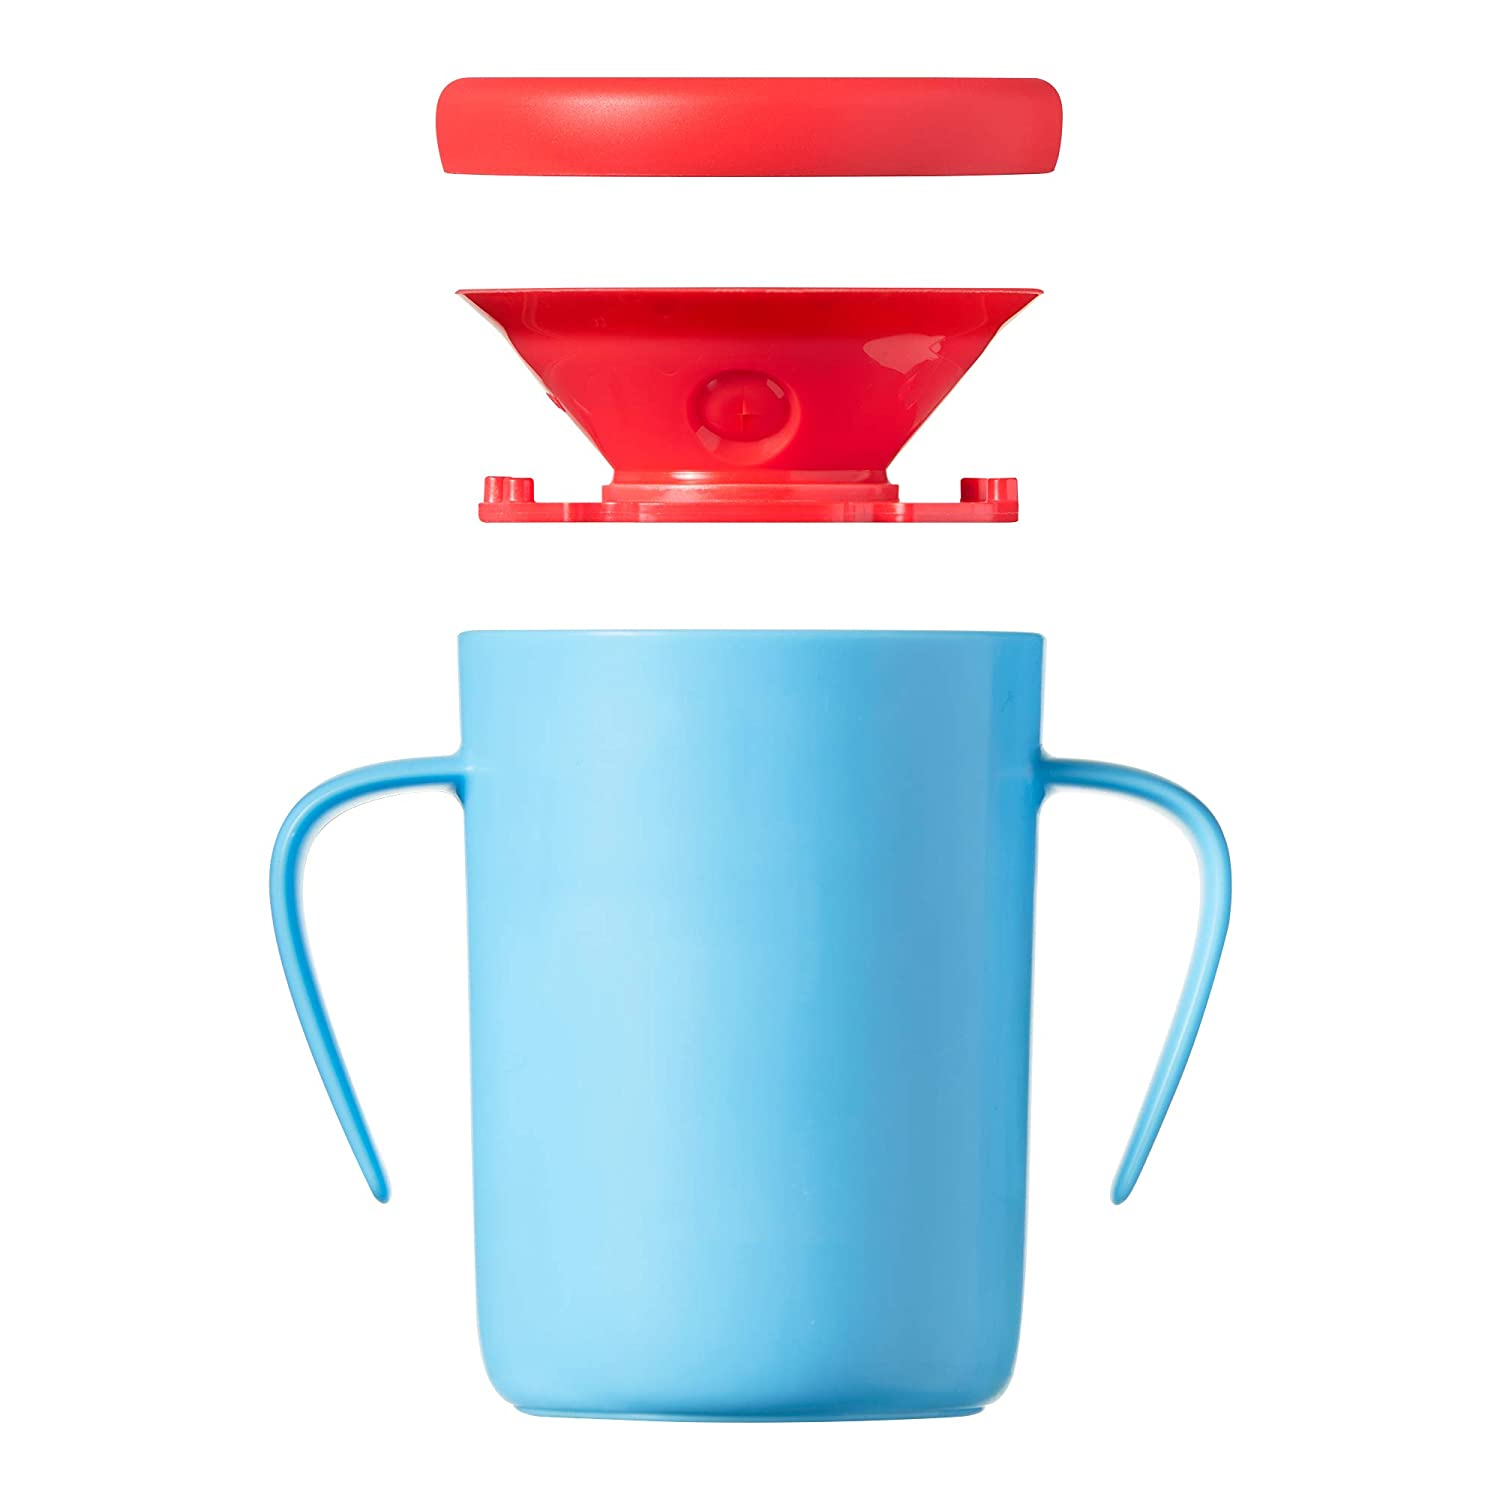 2-pack Tommee Tippee Easiflow 360 Degree Spill-Proof Toddler Cup with Handles and Travel Lid Aqua//Teal Aqua//Teal one-piece valve 12 months+